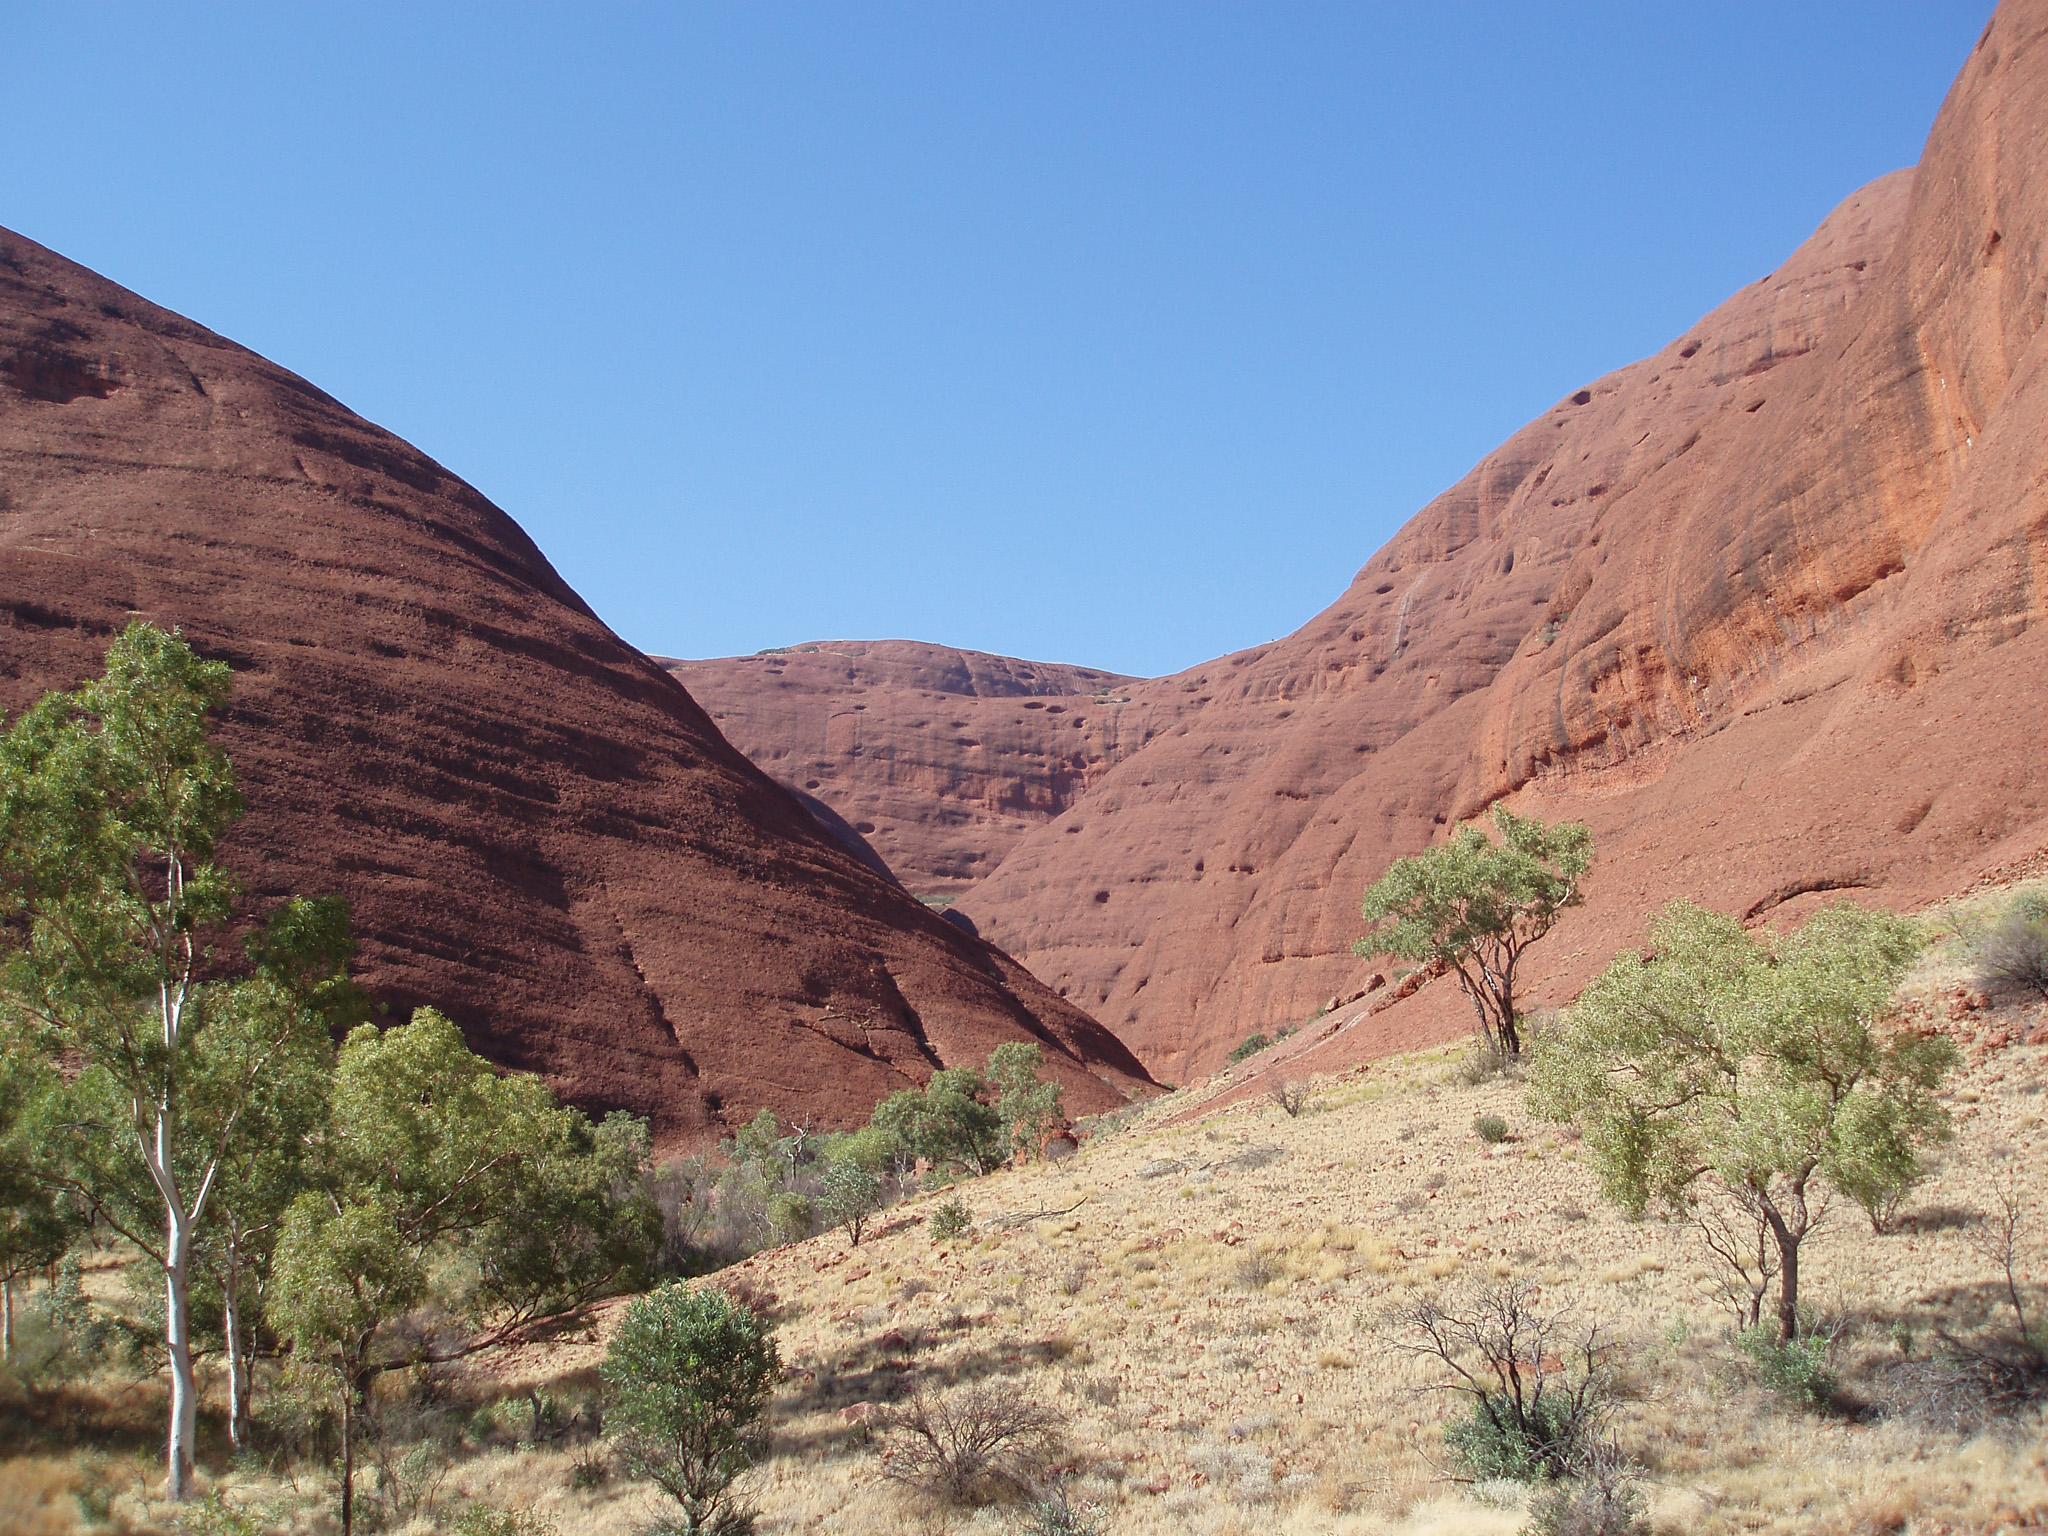 Green Trees and Large Domed Rock Formations at Famous Kata Tjuta on Light Blue Sky Background.